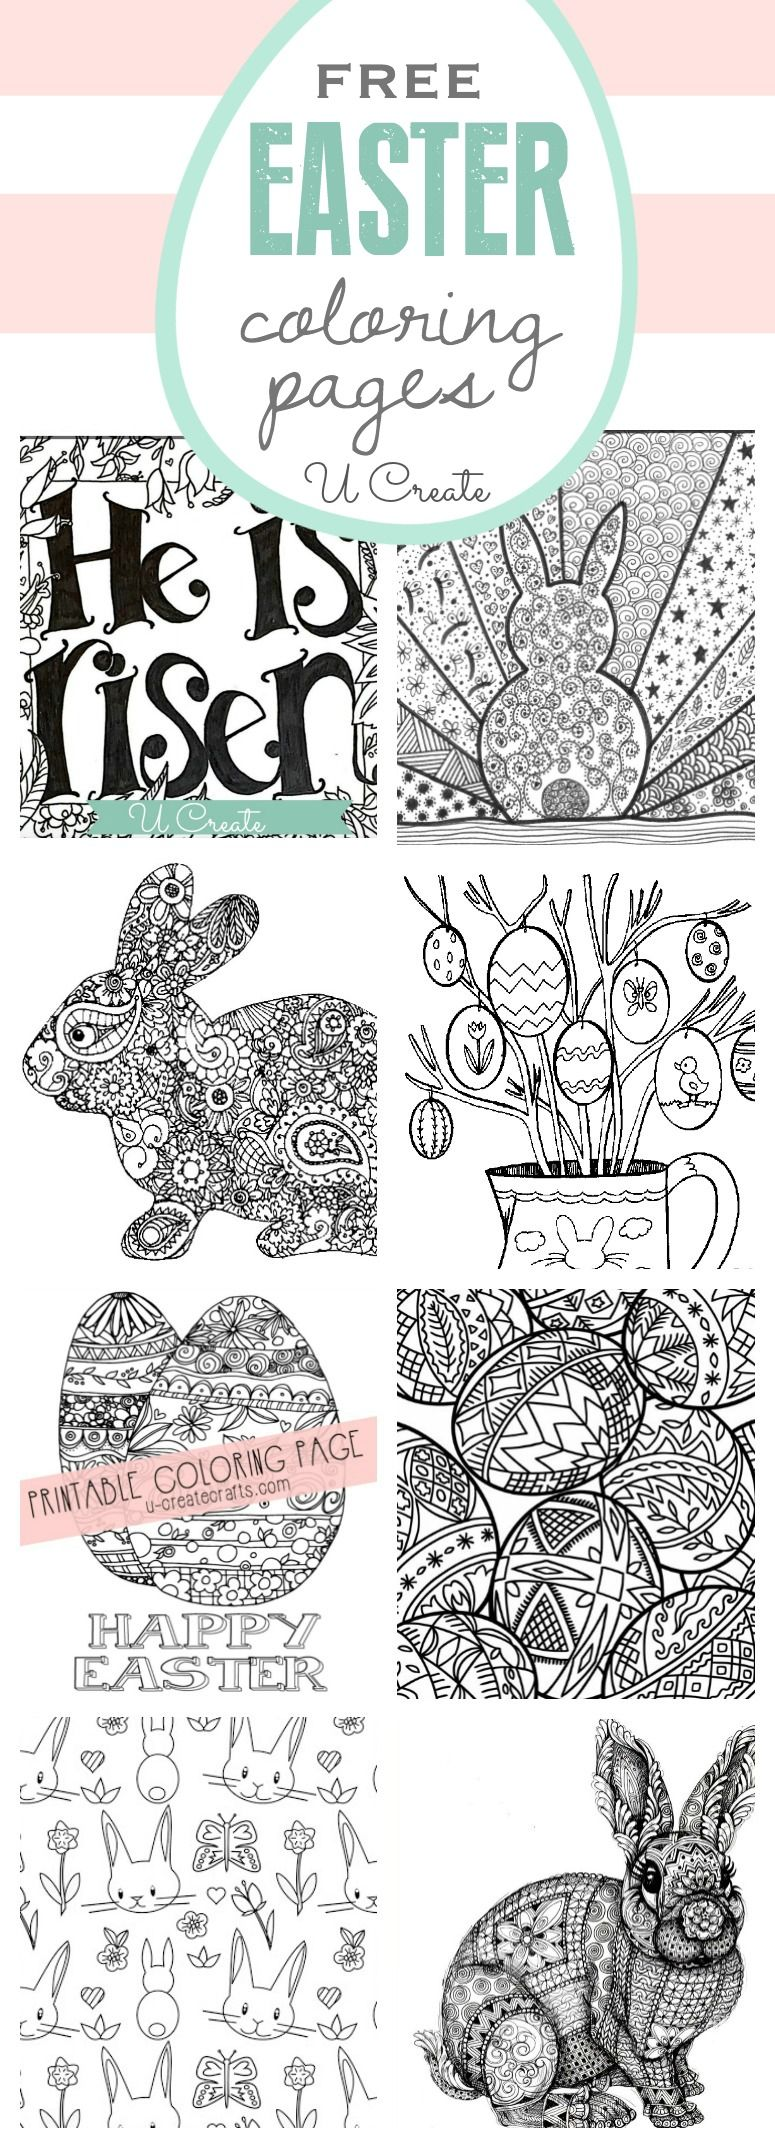 Free Easter Coloring Pages U Create Cute N Crafty Pinterest